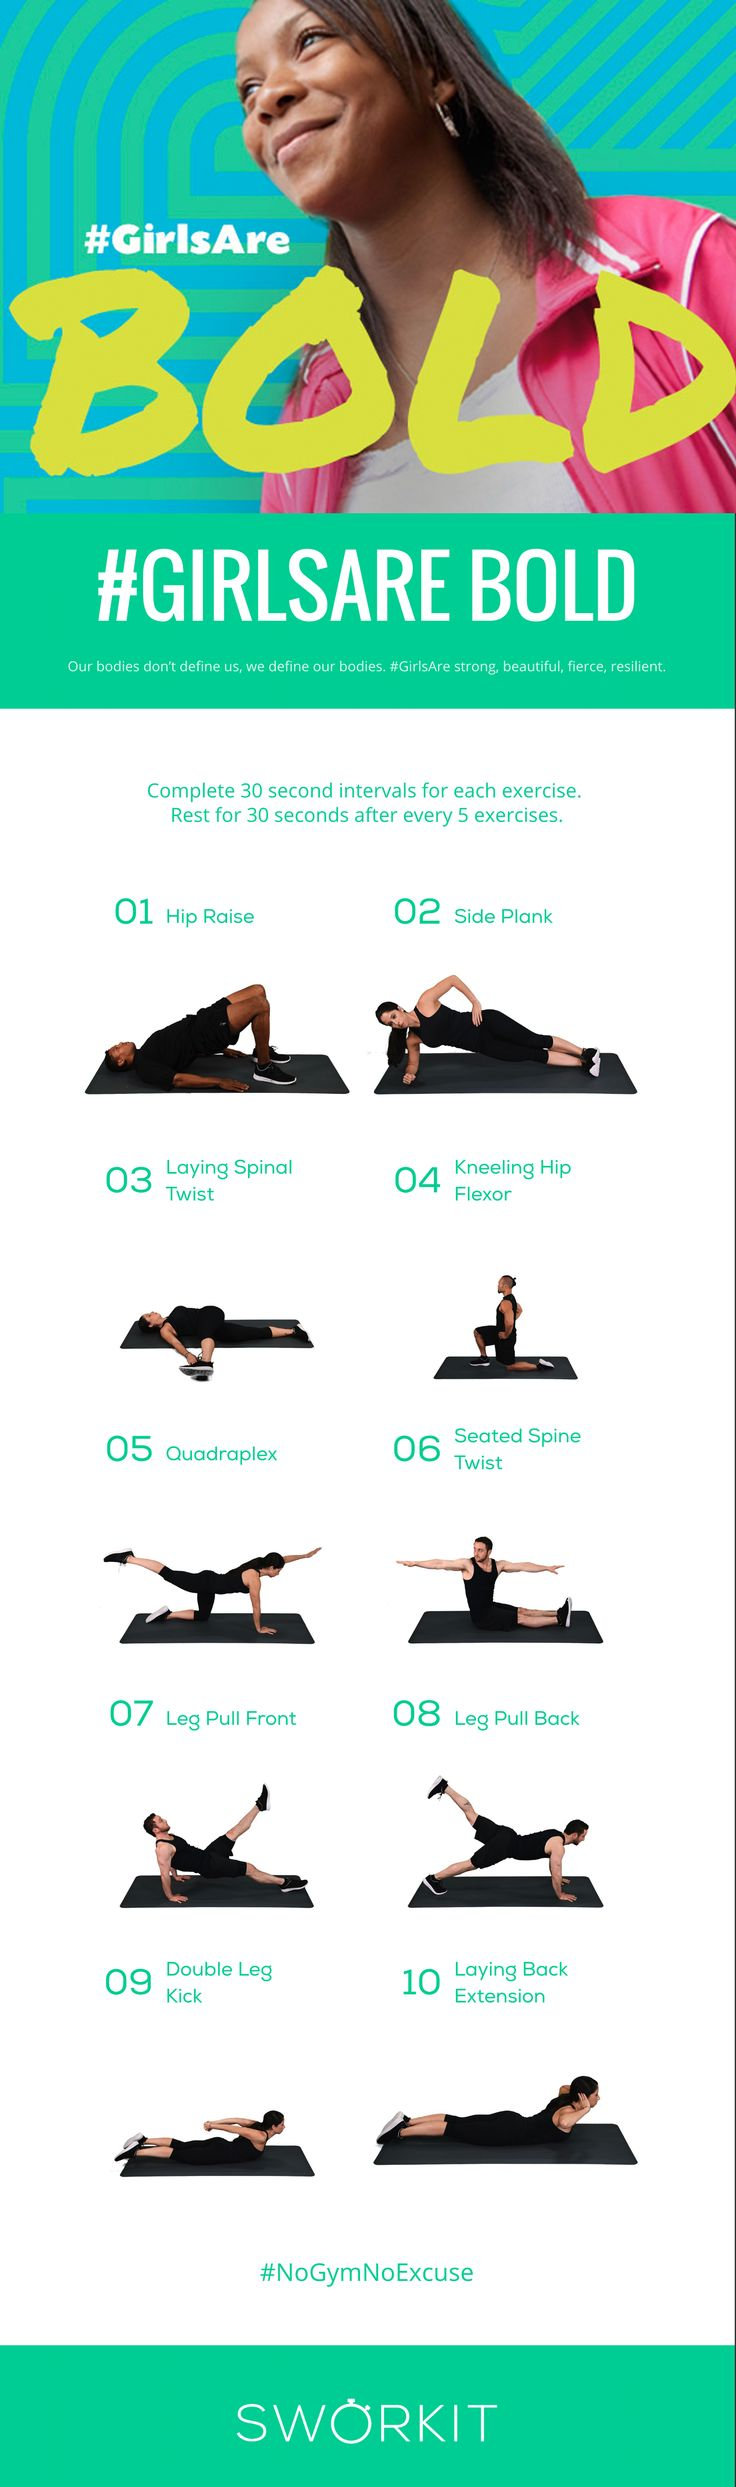 16 best images about Workouts